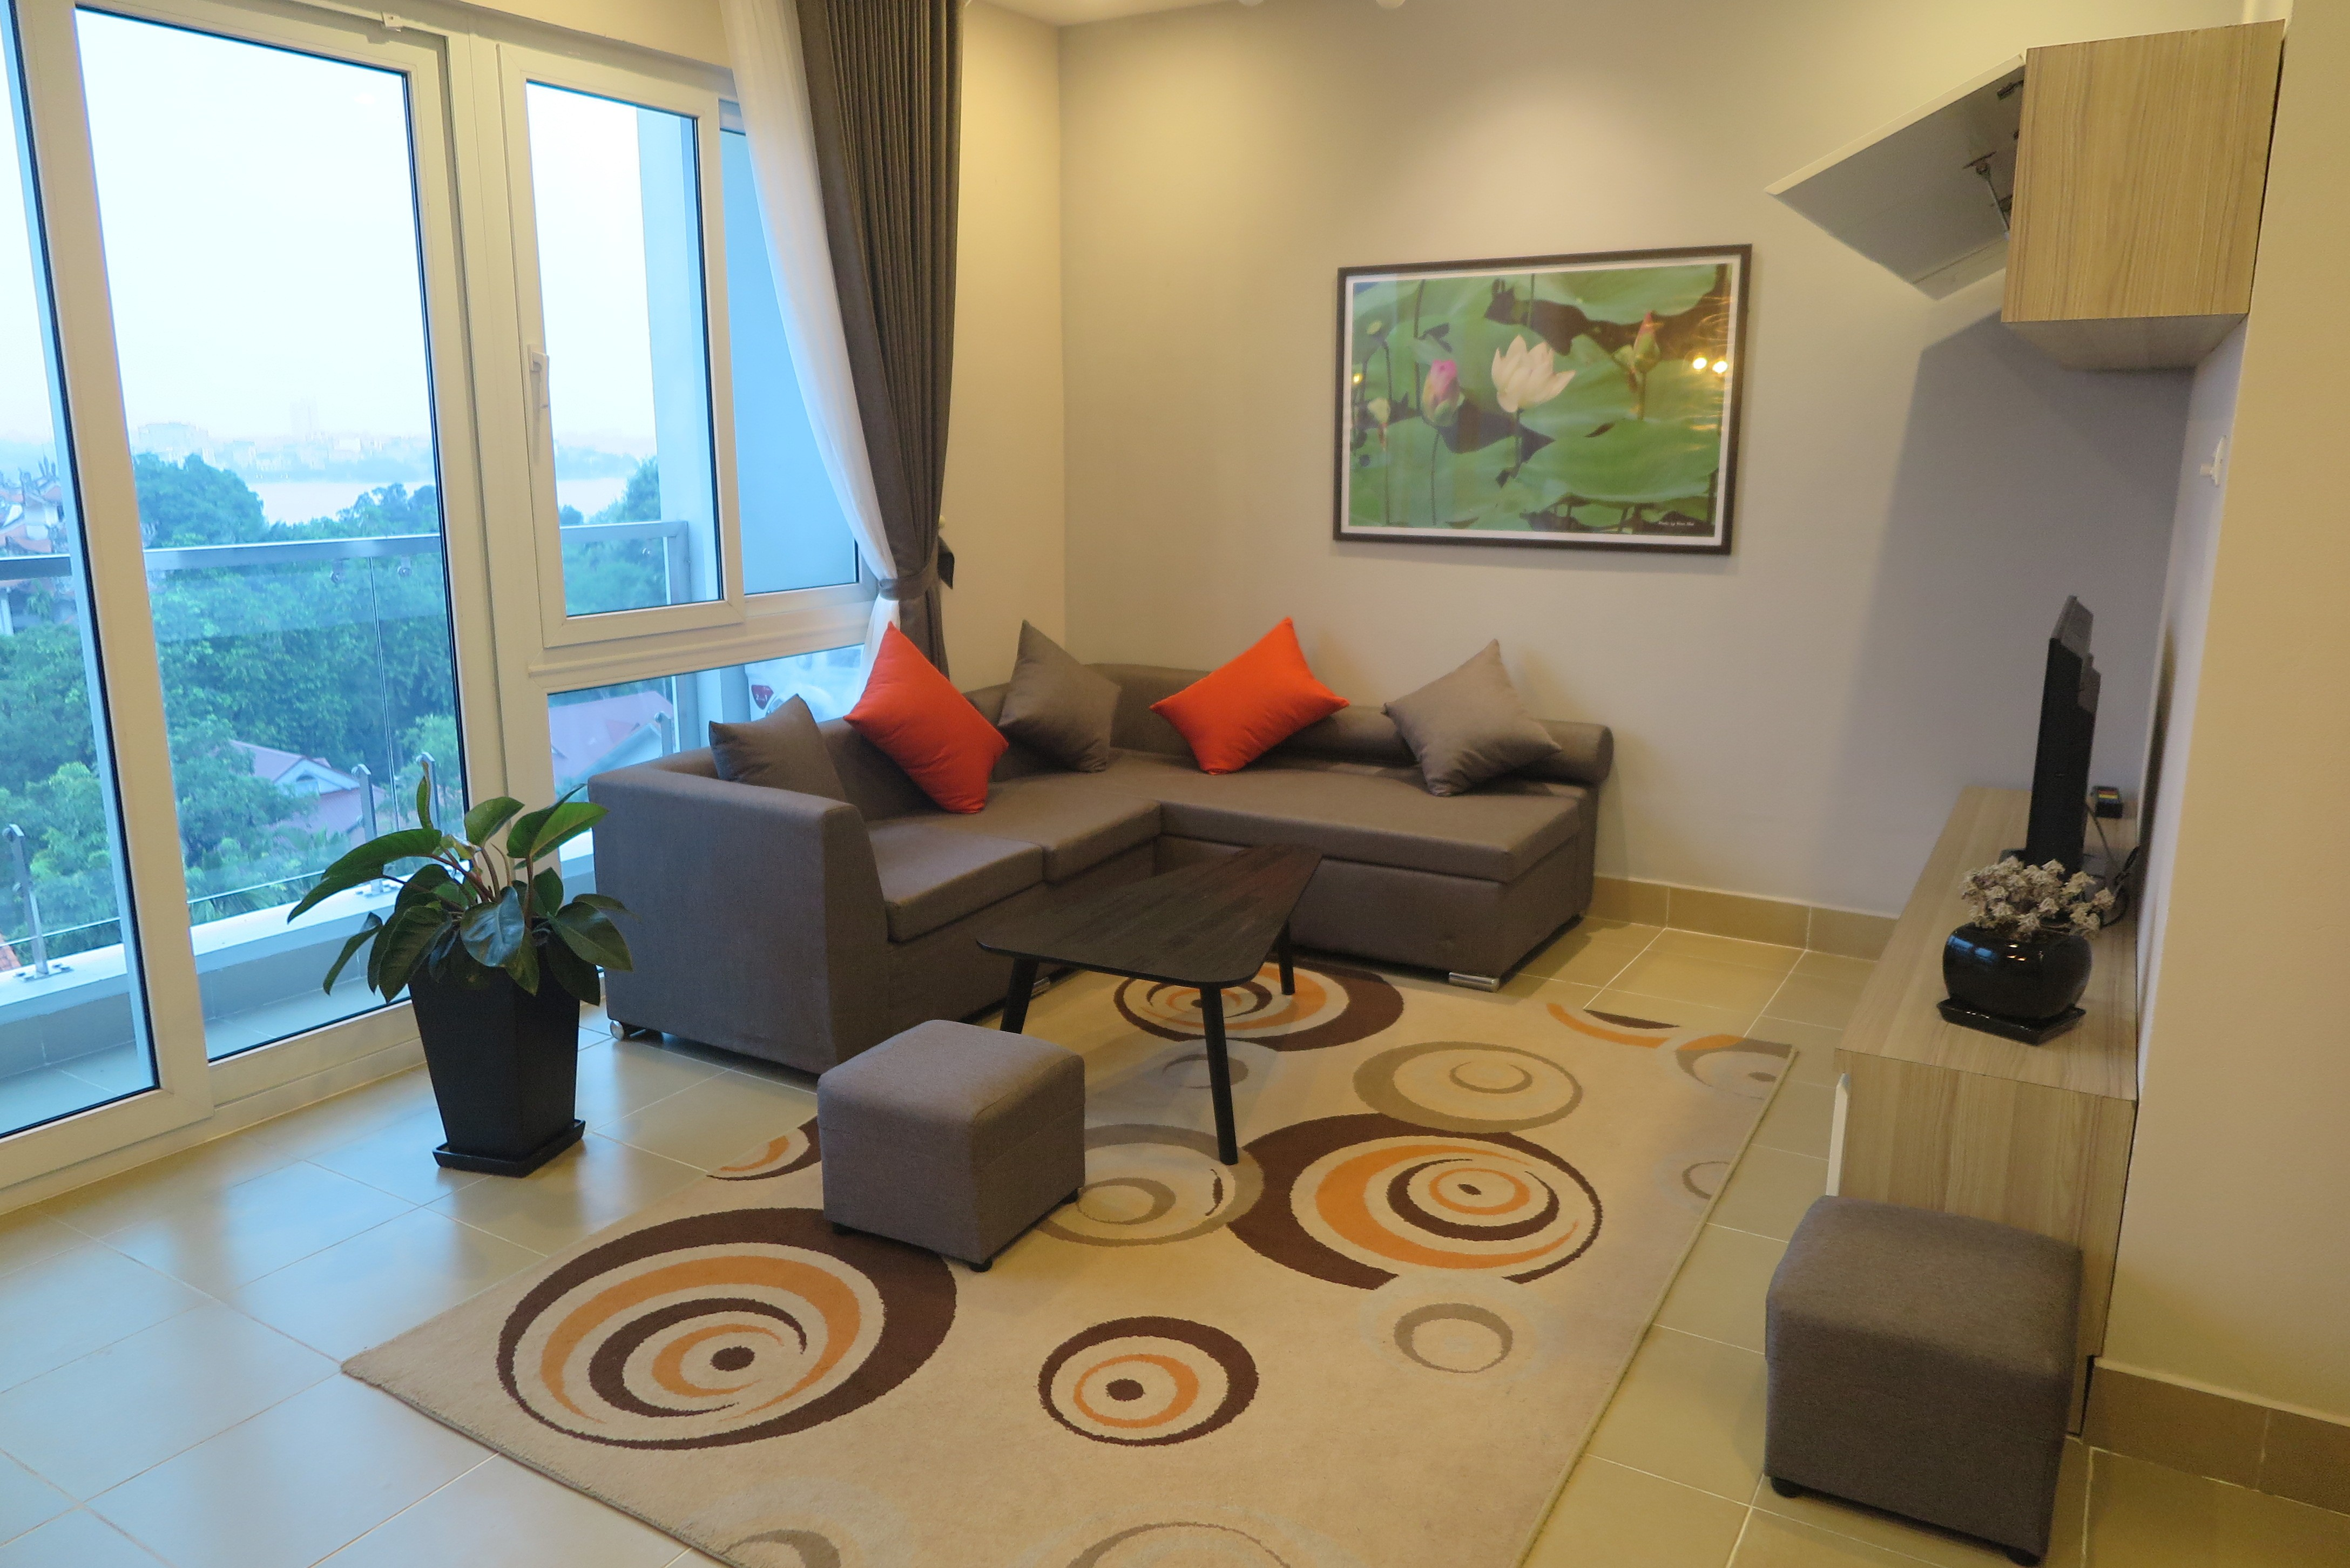 WONDERFUL VIEW, GARDEN AND LAKE VIEW 2 BEDROOM APARTMENT IN TAY HO, HA NOI